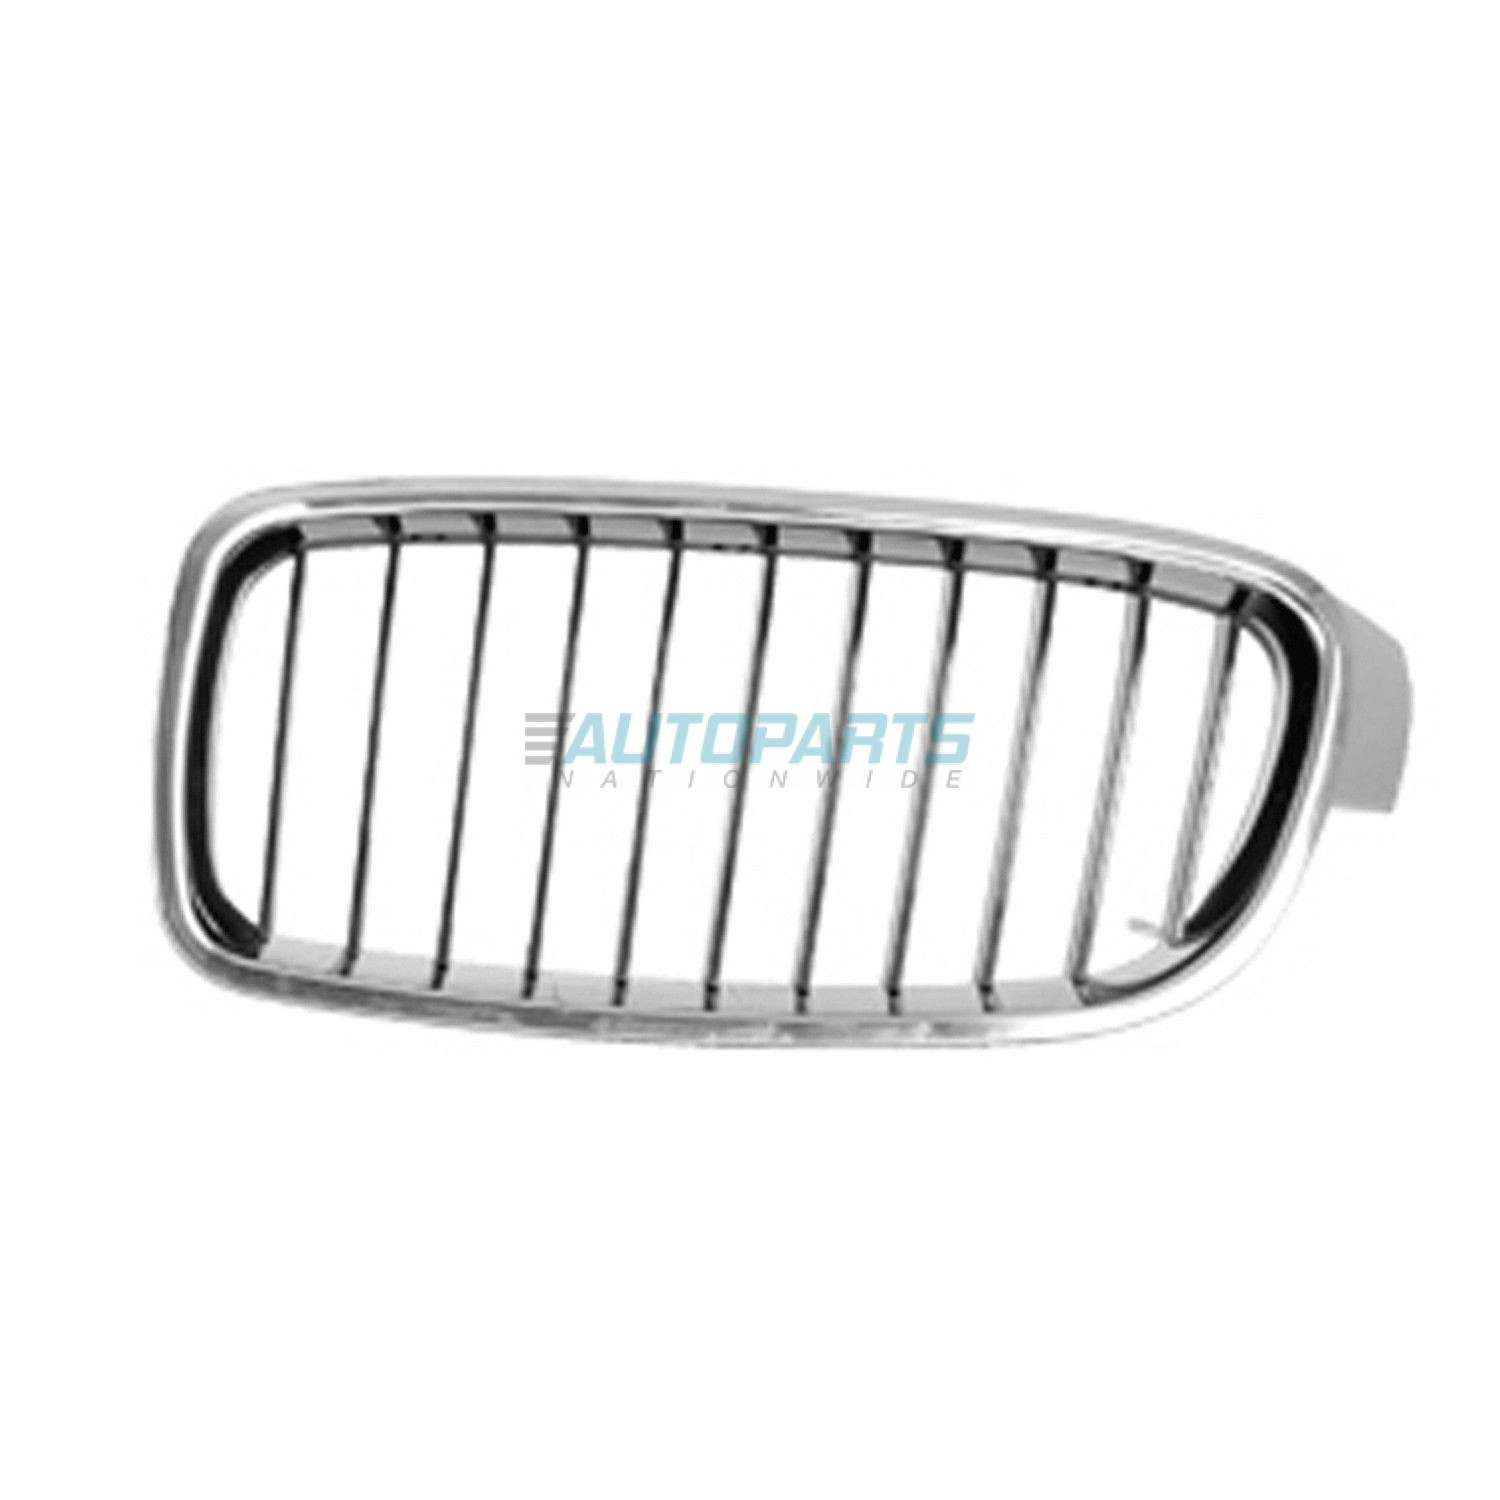 NEW FRONT LOWER BUMPER GRILLE FITS 2012-2015 BMW 3-SERIES BM1037101C CAPA